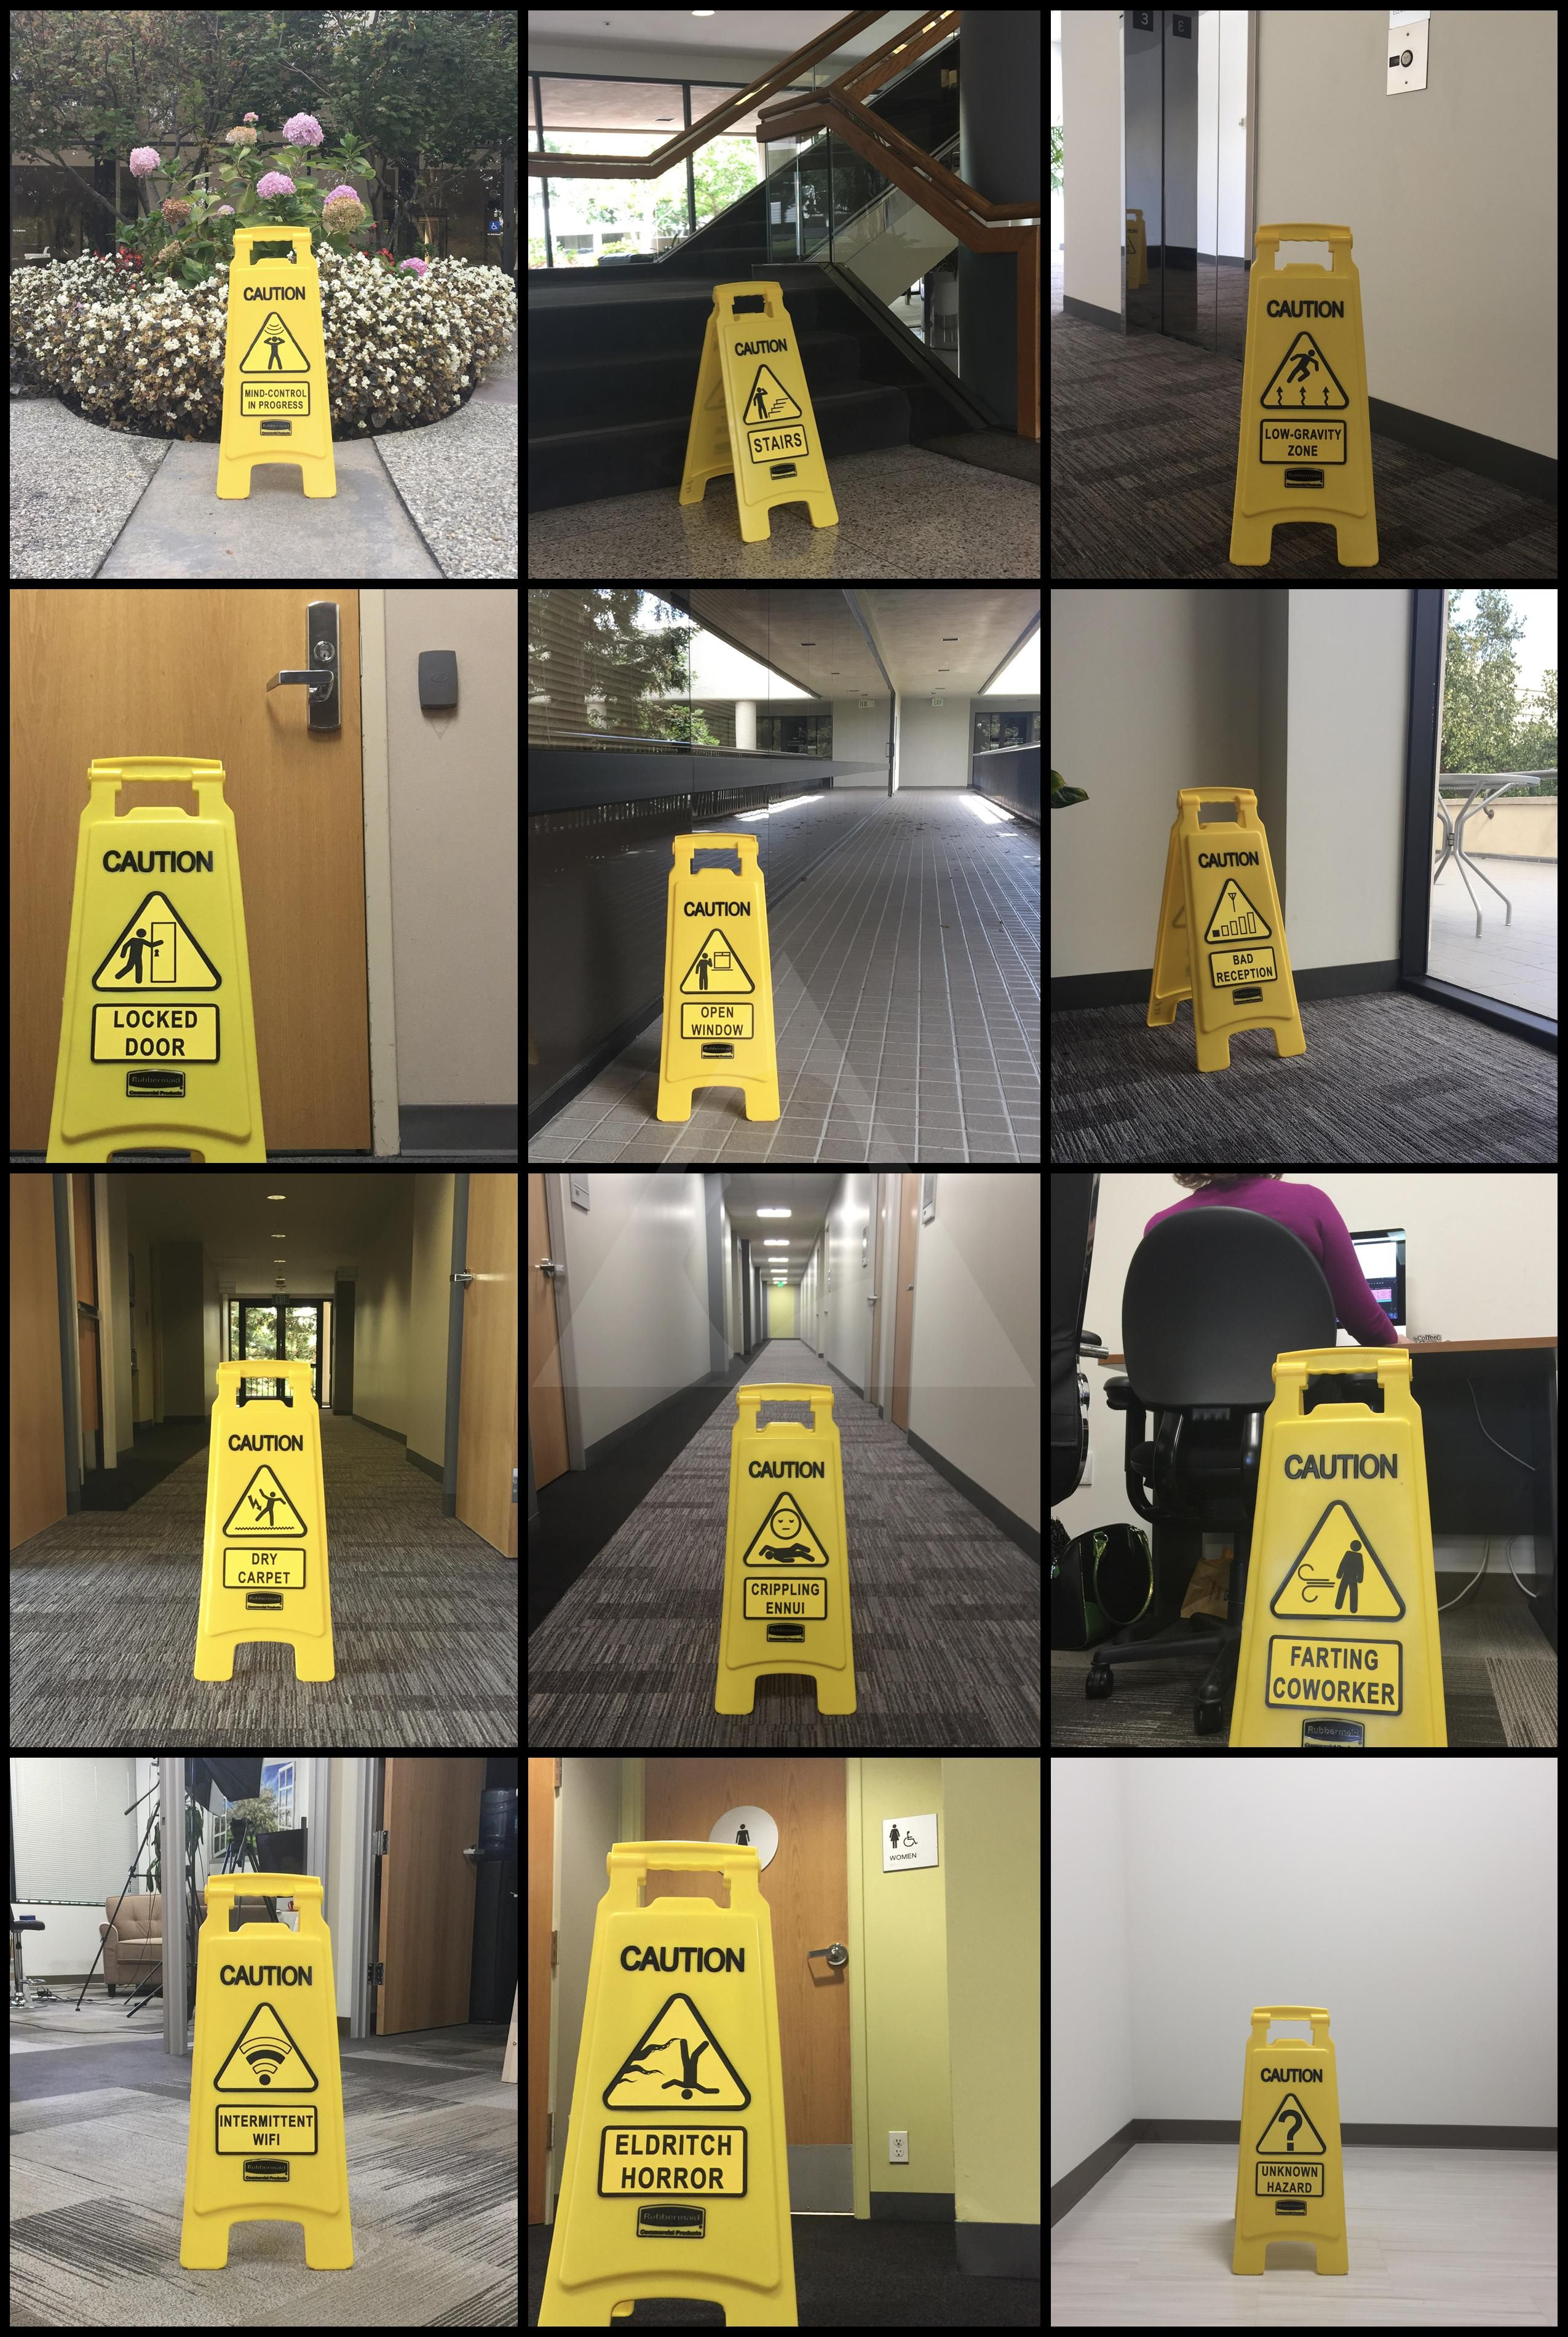 I used to amuse myself by leaving fake hazard signs around the office.